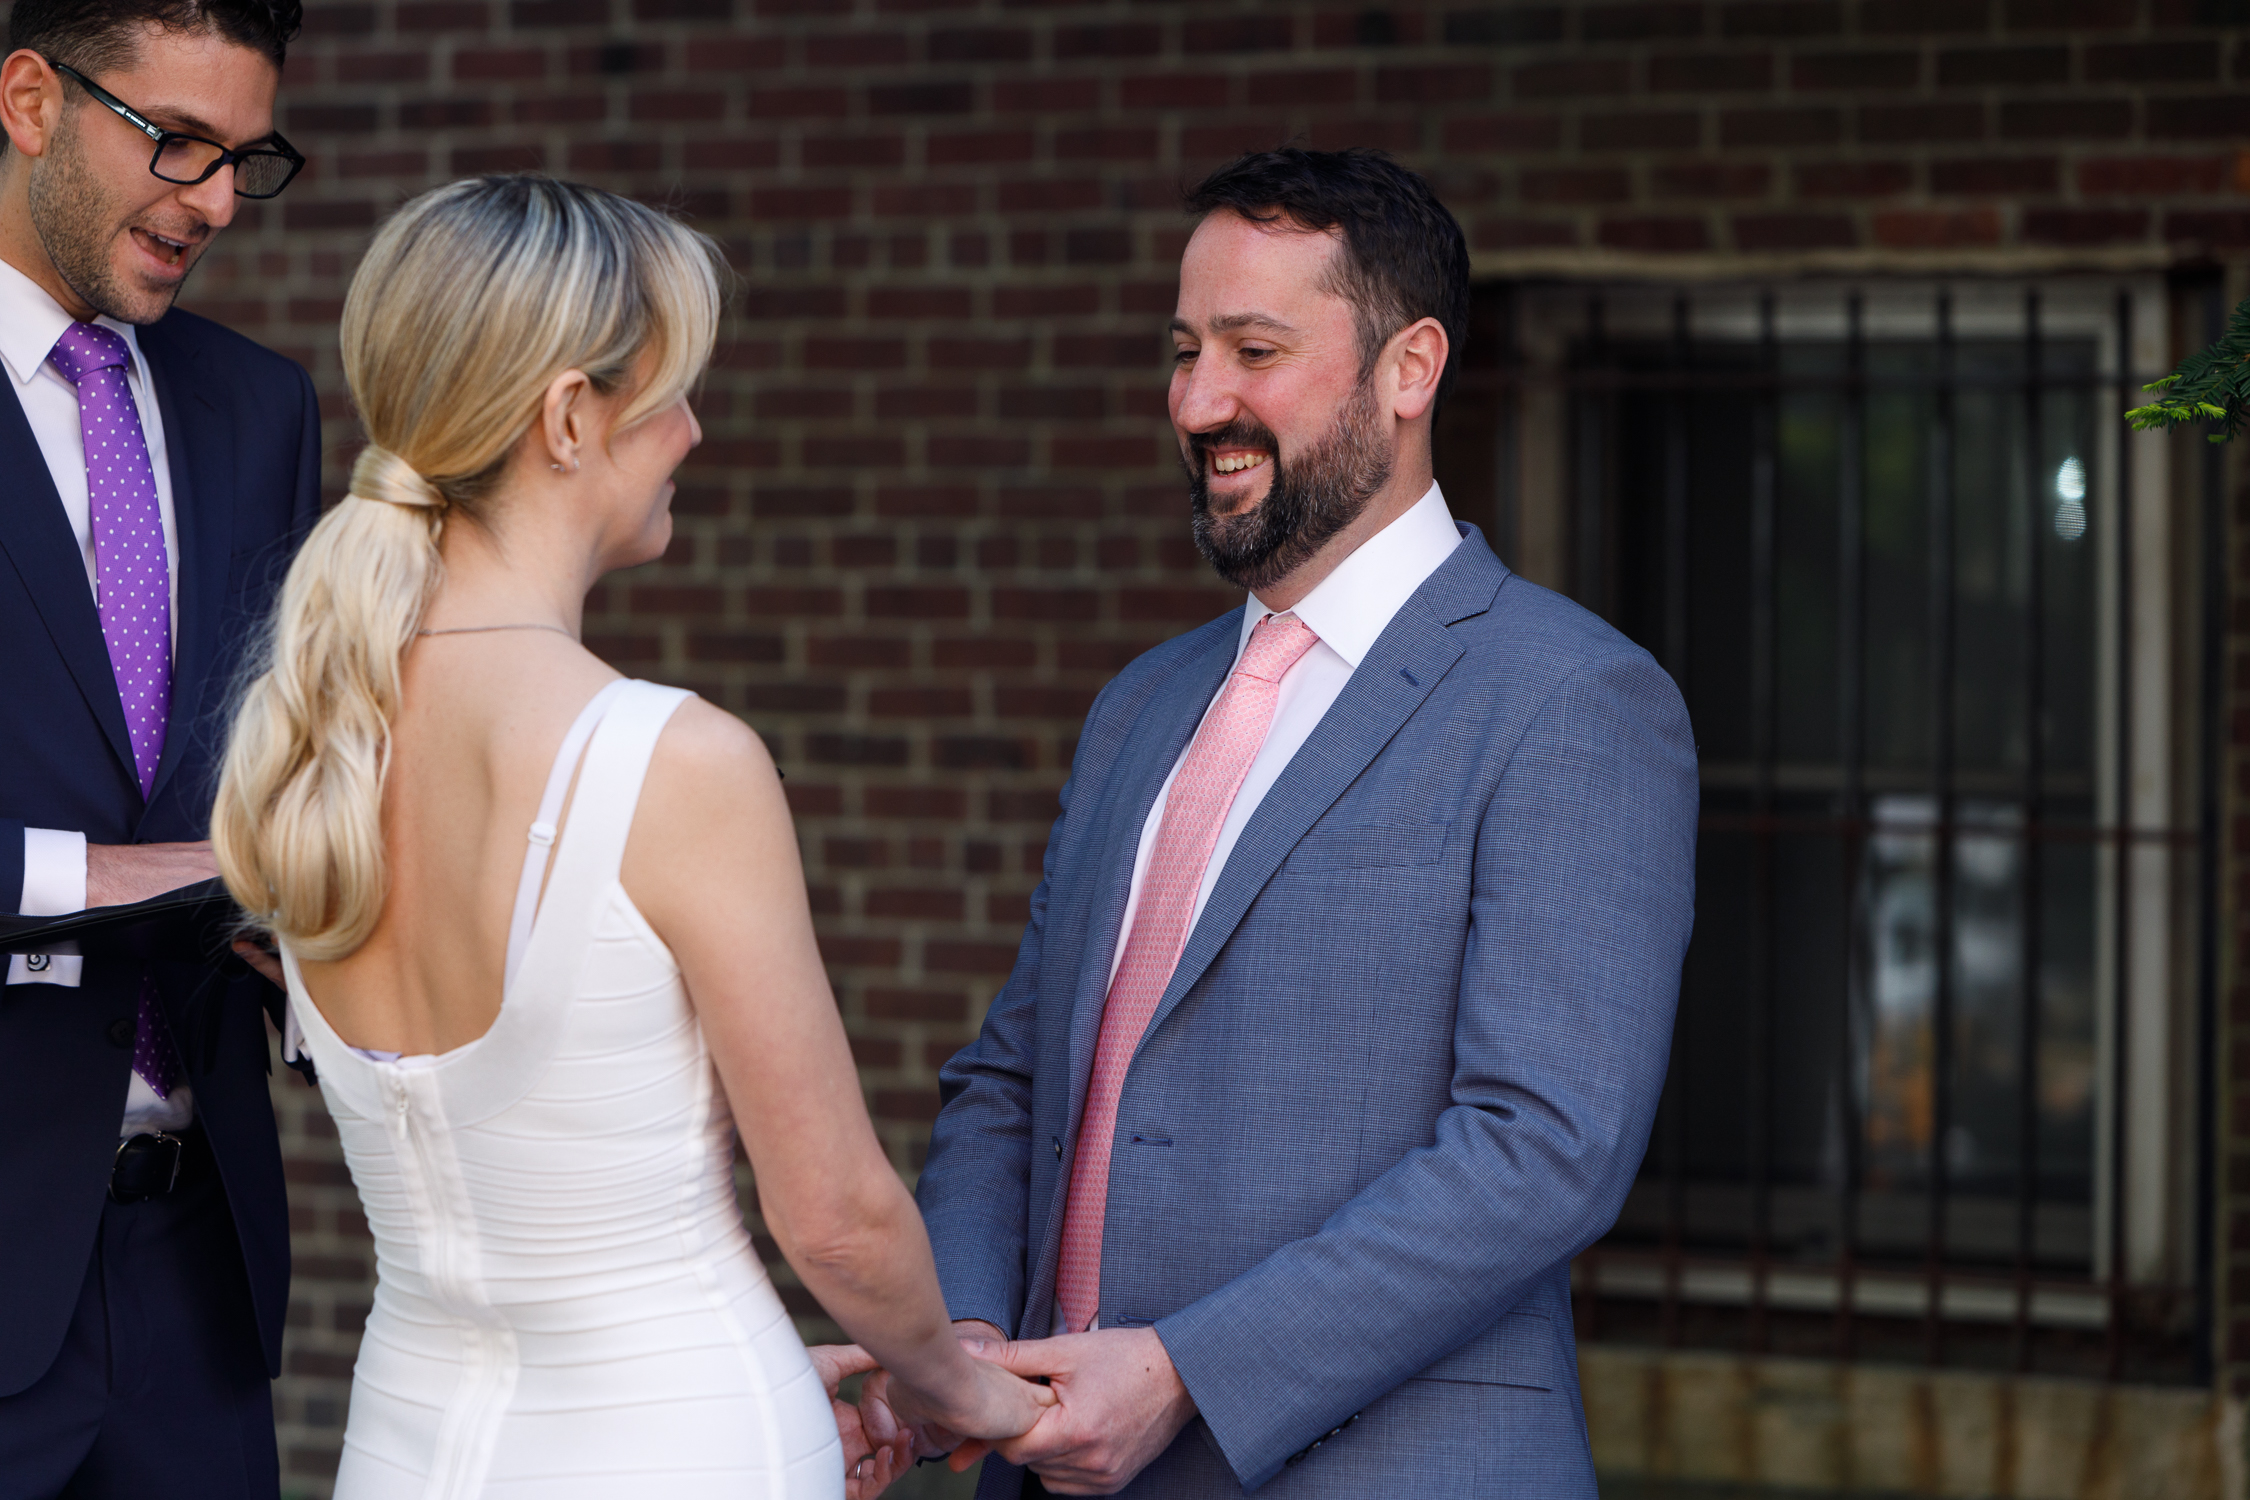 Brooklyn Wedding Photographer _ Jonathan Heisler _ 5112019 _007.jpg